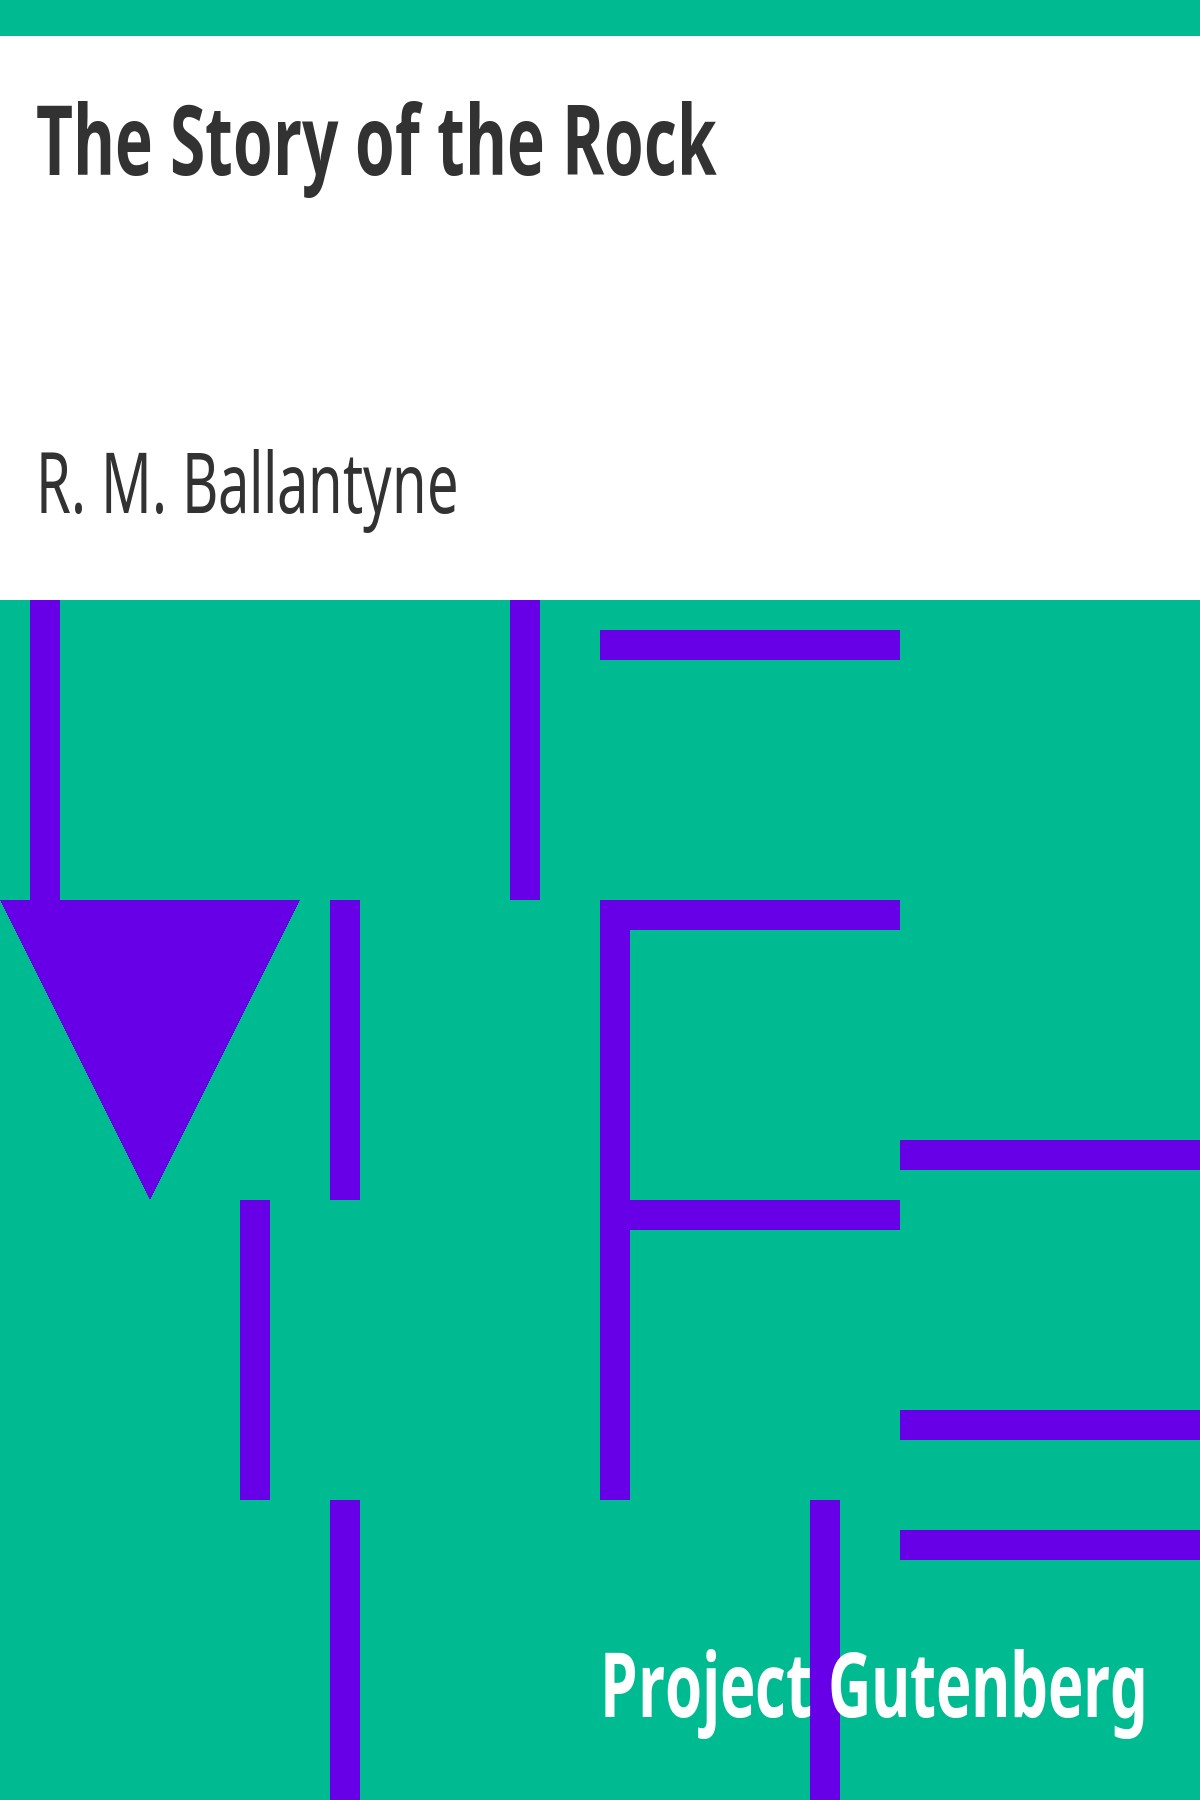 R. M. Ballantyne The Story of the Rock